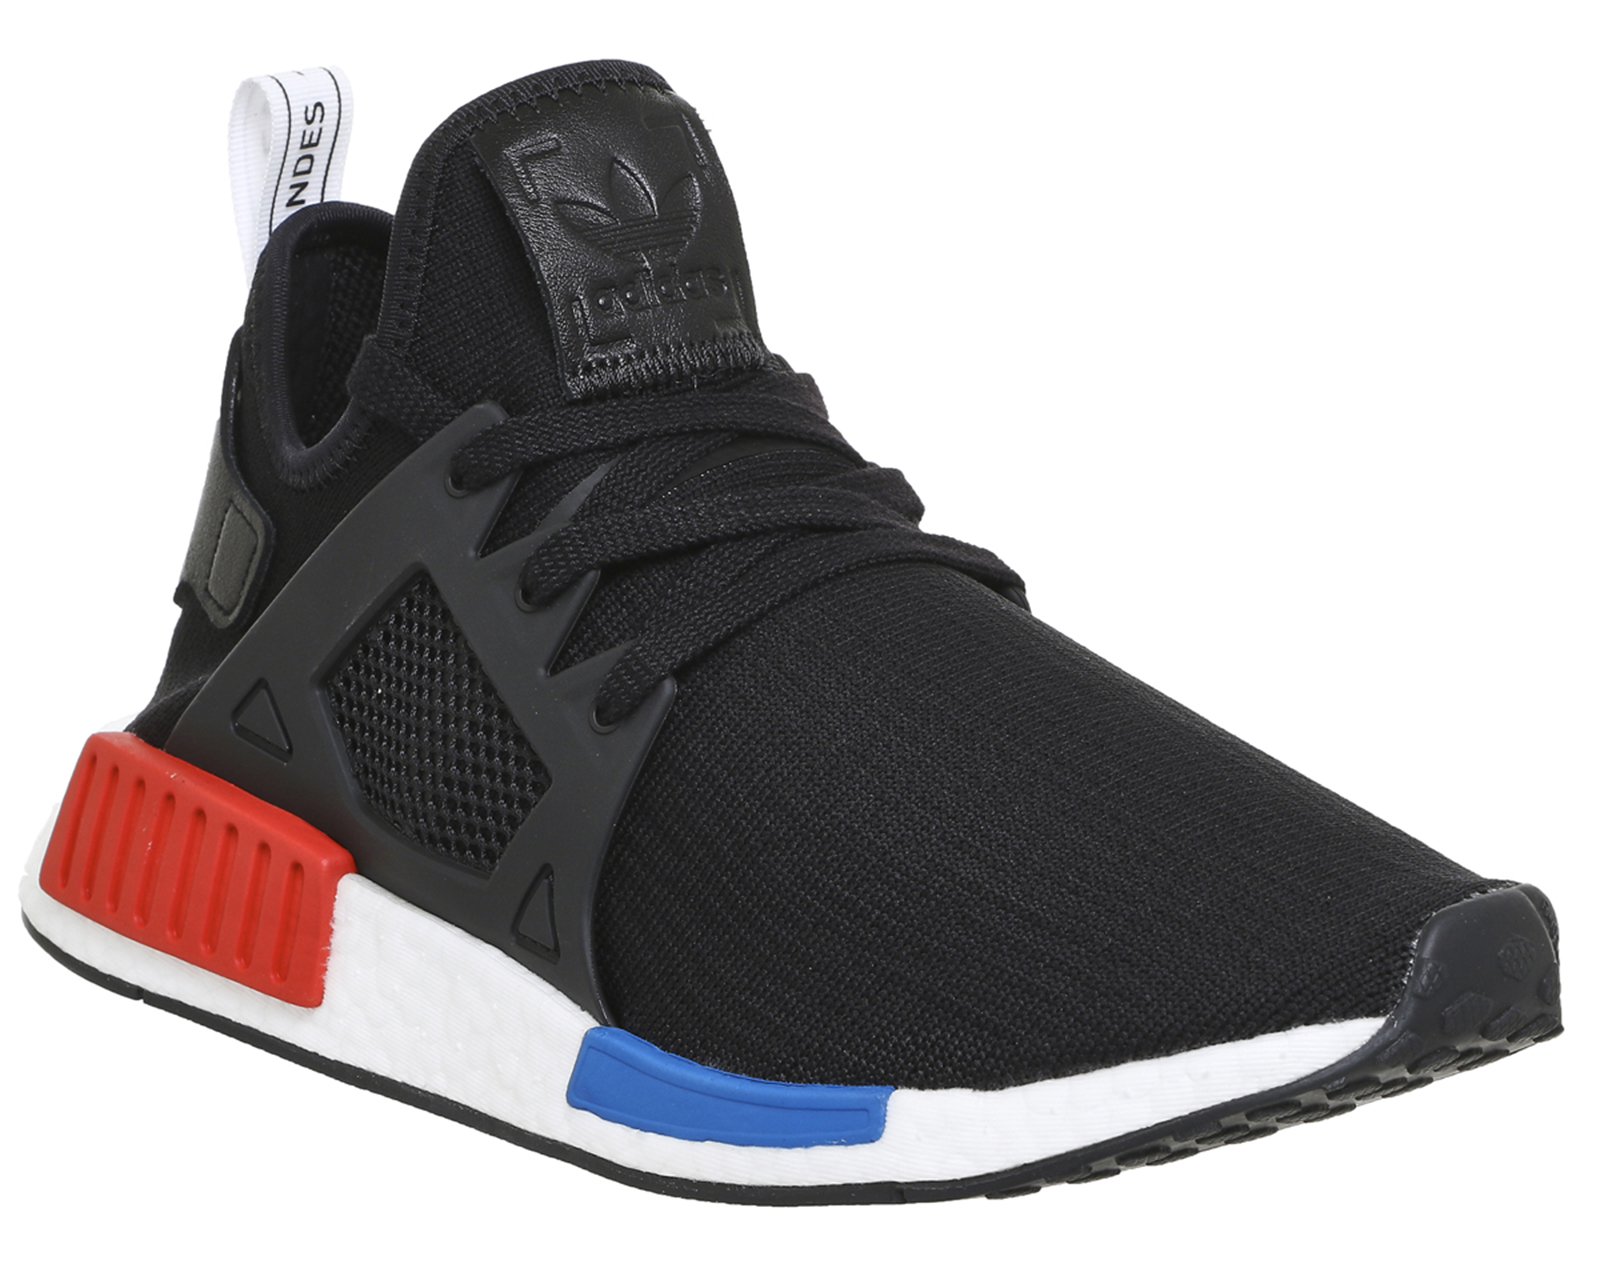 S32216 Adidas Nmd Xr1 Pk Glitch Camo White Red Primeknit Us 12.5